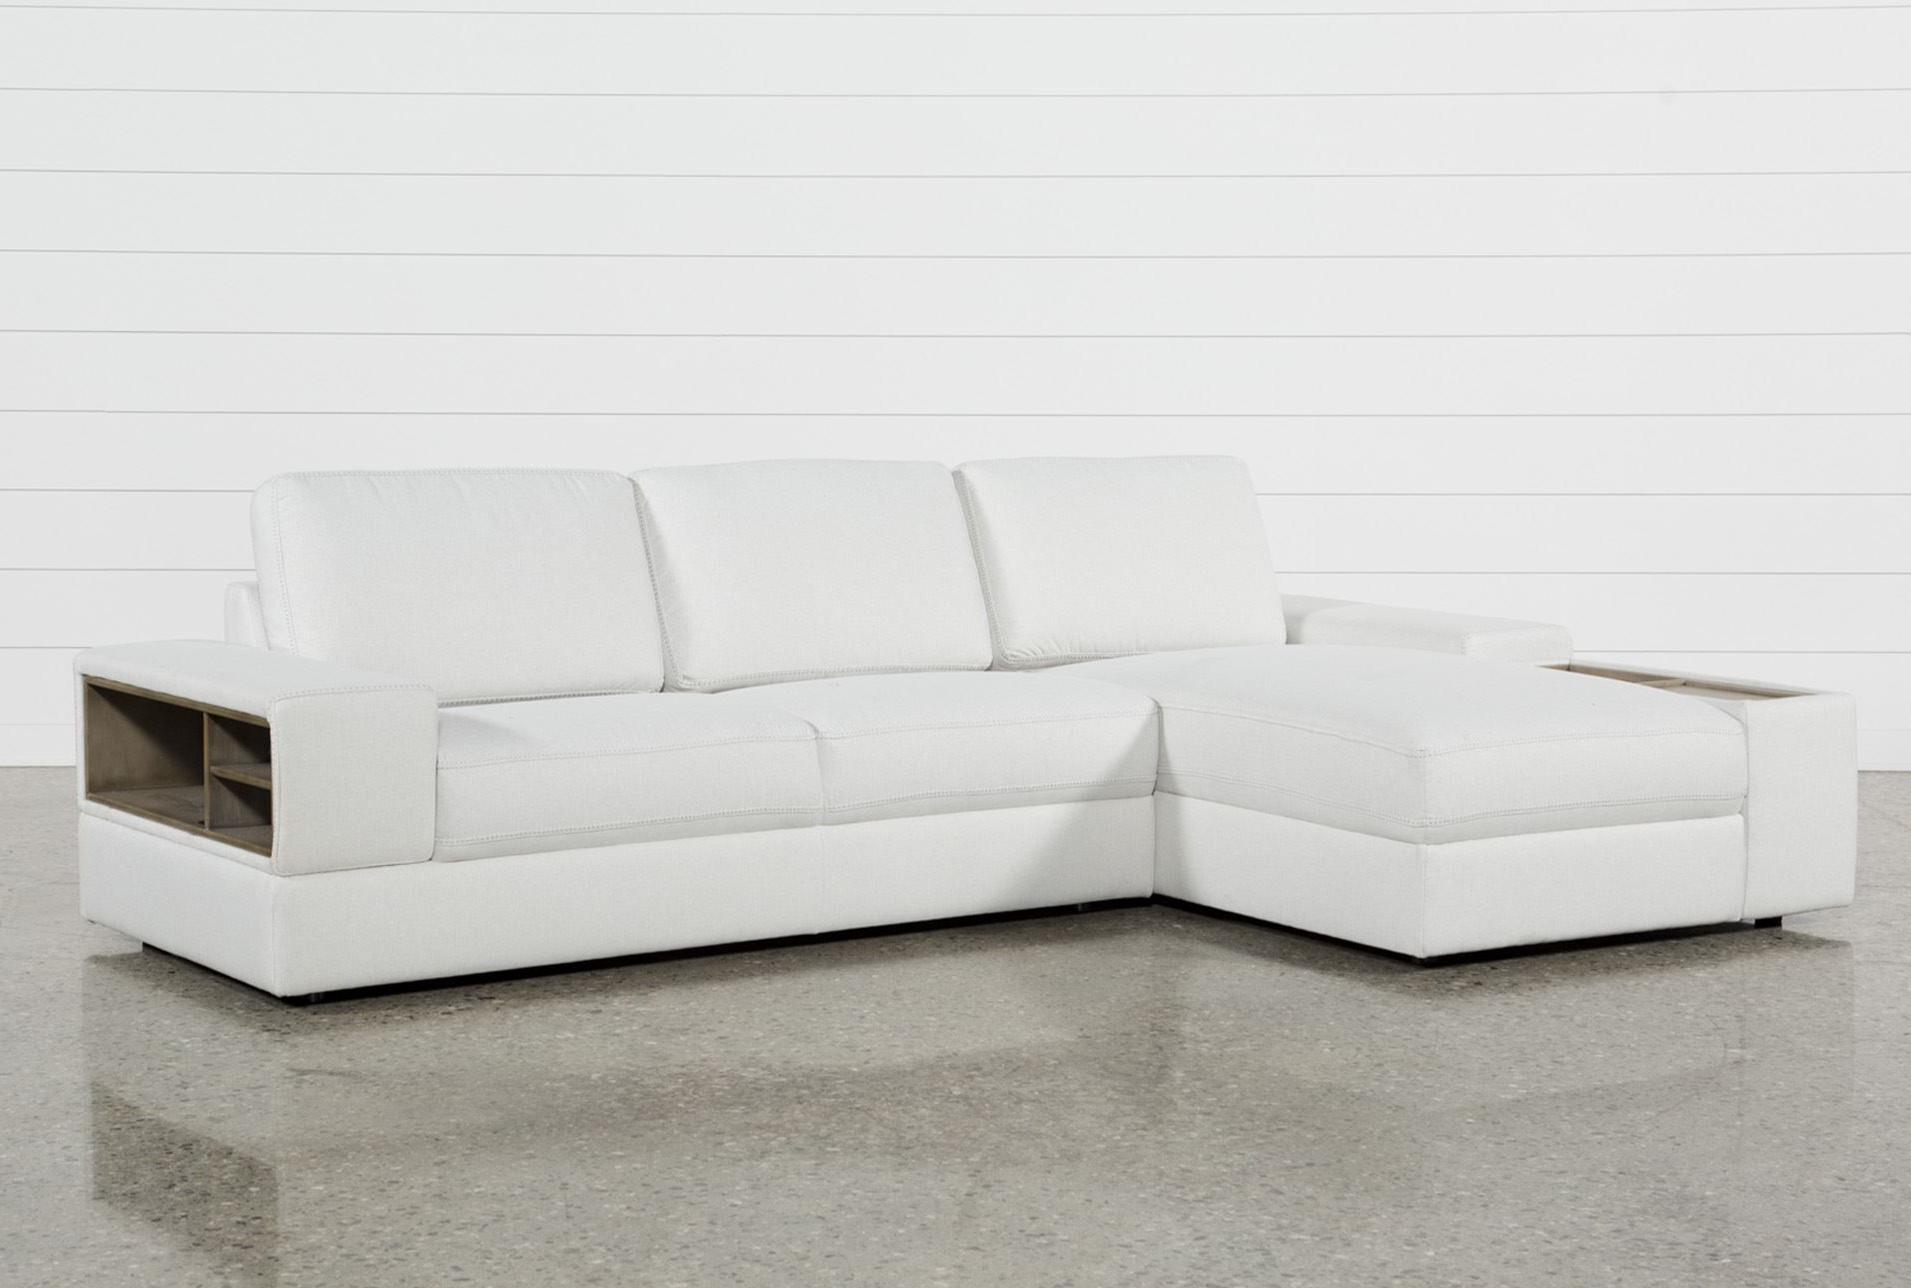 Stone Throughout Most Current Arrowmask 2 Piece Sectionals With Laf Chaise (View 9 of 20)